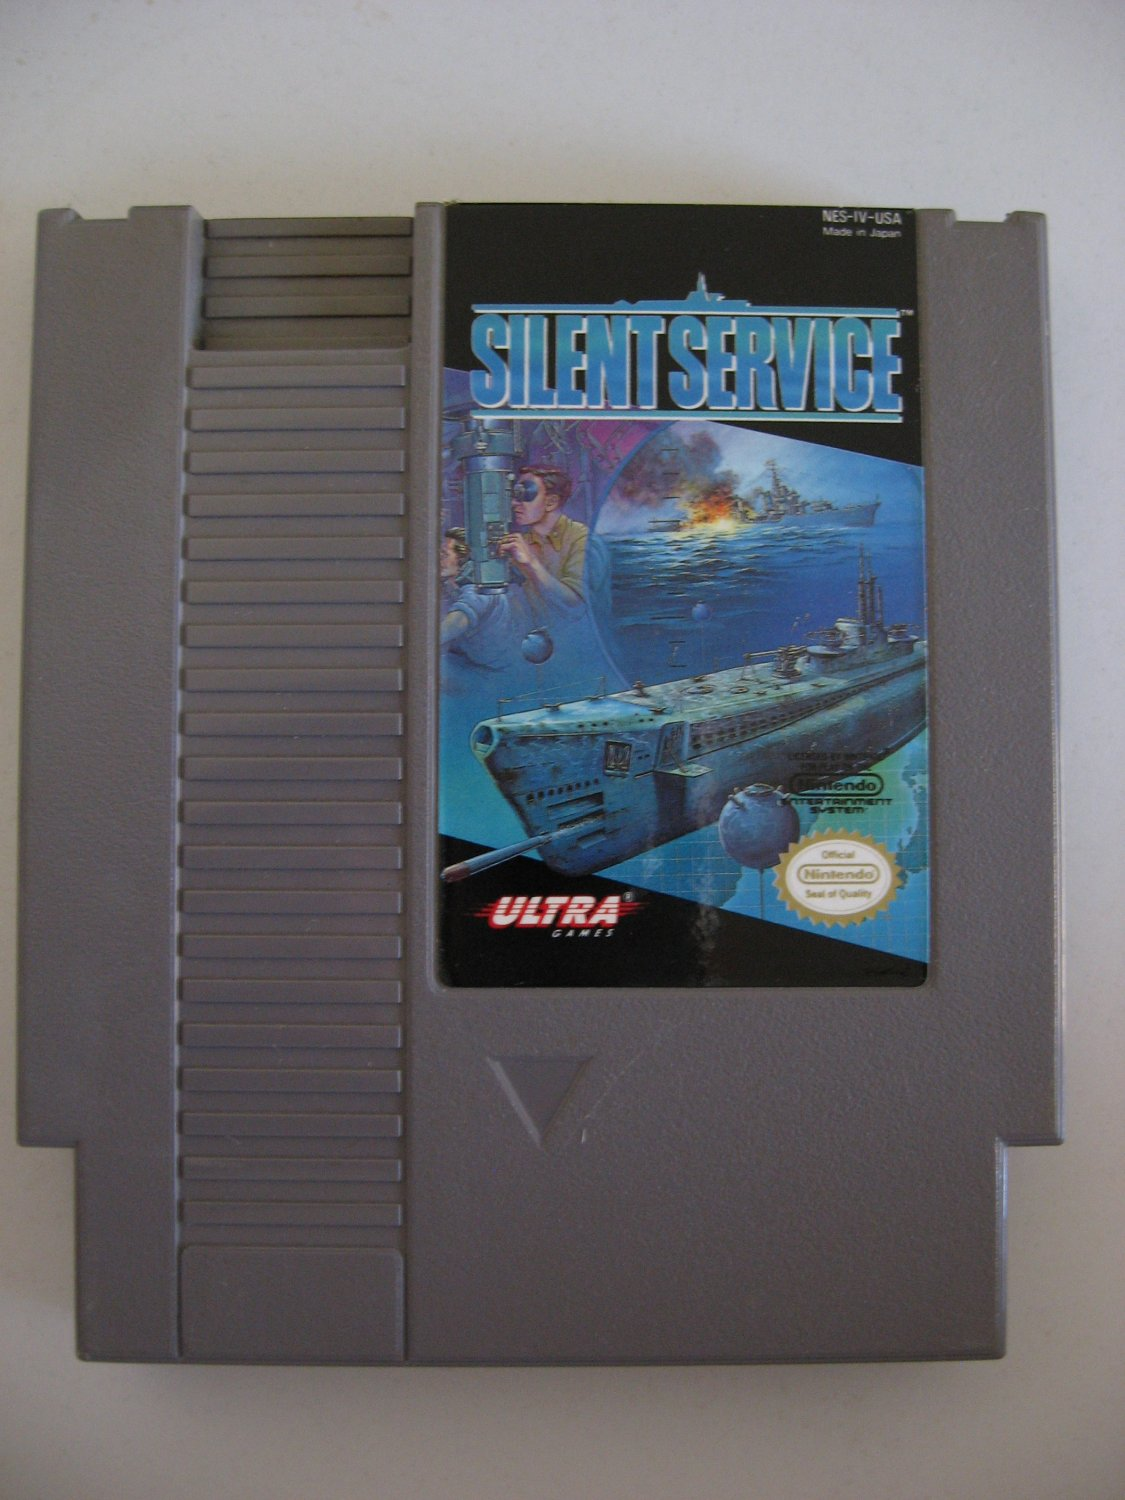 Silent Service  -  Game Cartridge